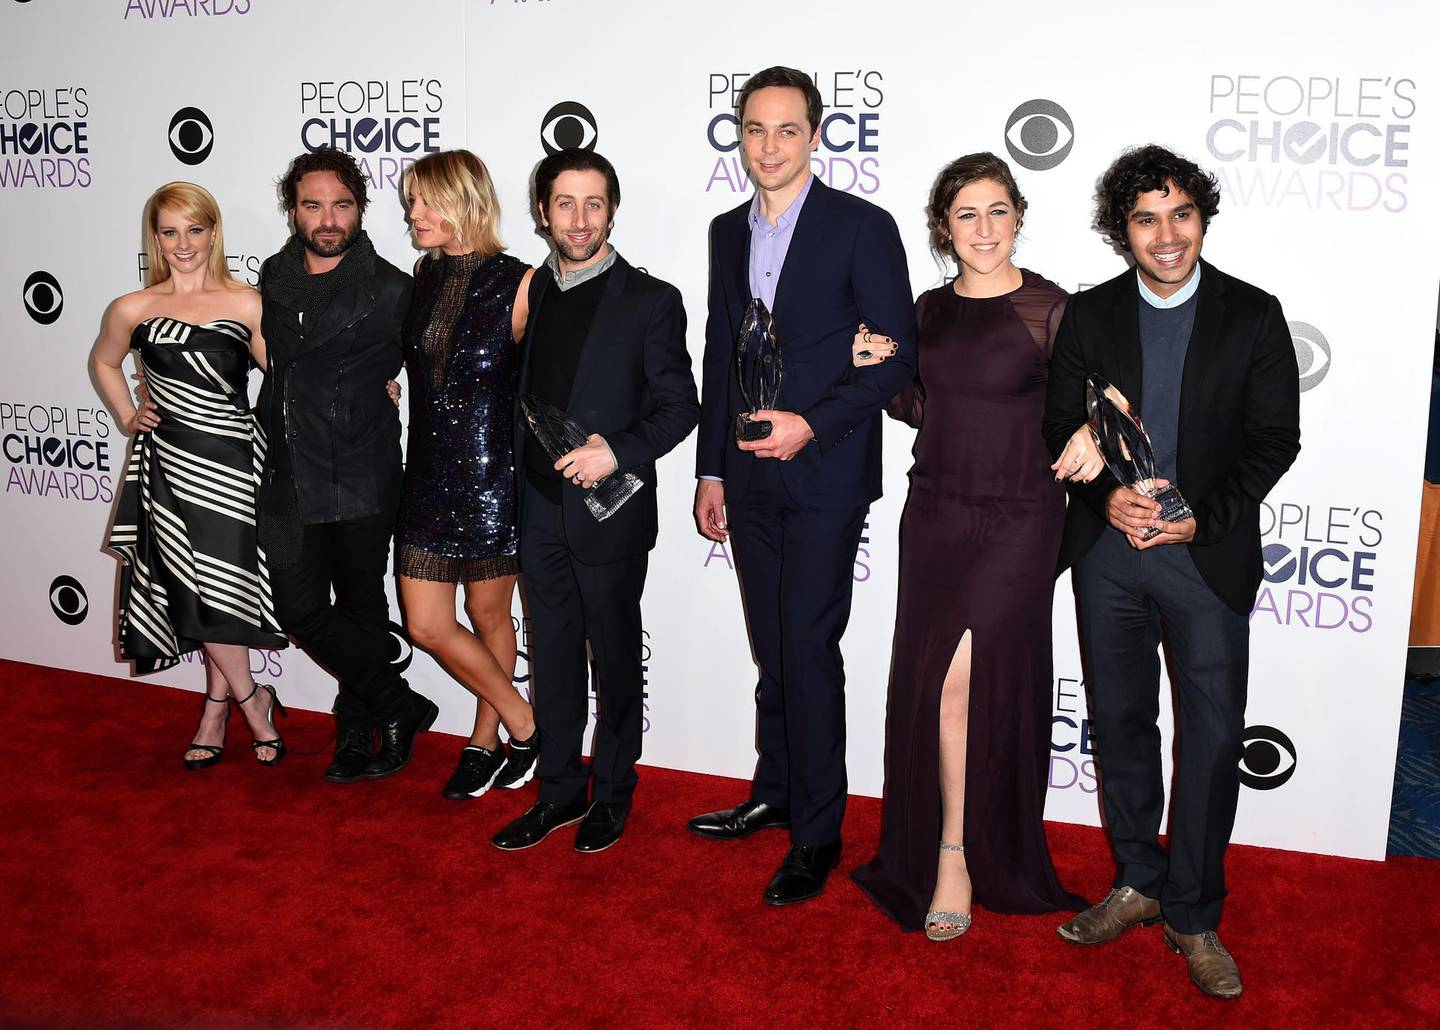 """(FILES) In this file photo taken on January 6, 2016 the ast of The Big Bang Theory poses in the press Room at the People's Choice Awards 2016 at Microsoft Theater in Los Angeles, California. - Award-winning ratings smash """"The Big Bang Theory"""" will end with the finale of its 12th season in May next year, CBS said on August 22, 2018, lavishing praise on the long-running comedy. (Photo by Angela WEISS / AFP)"""